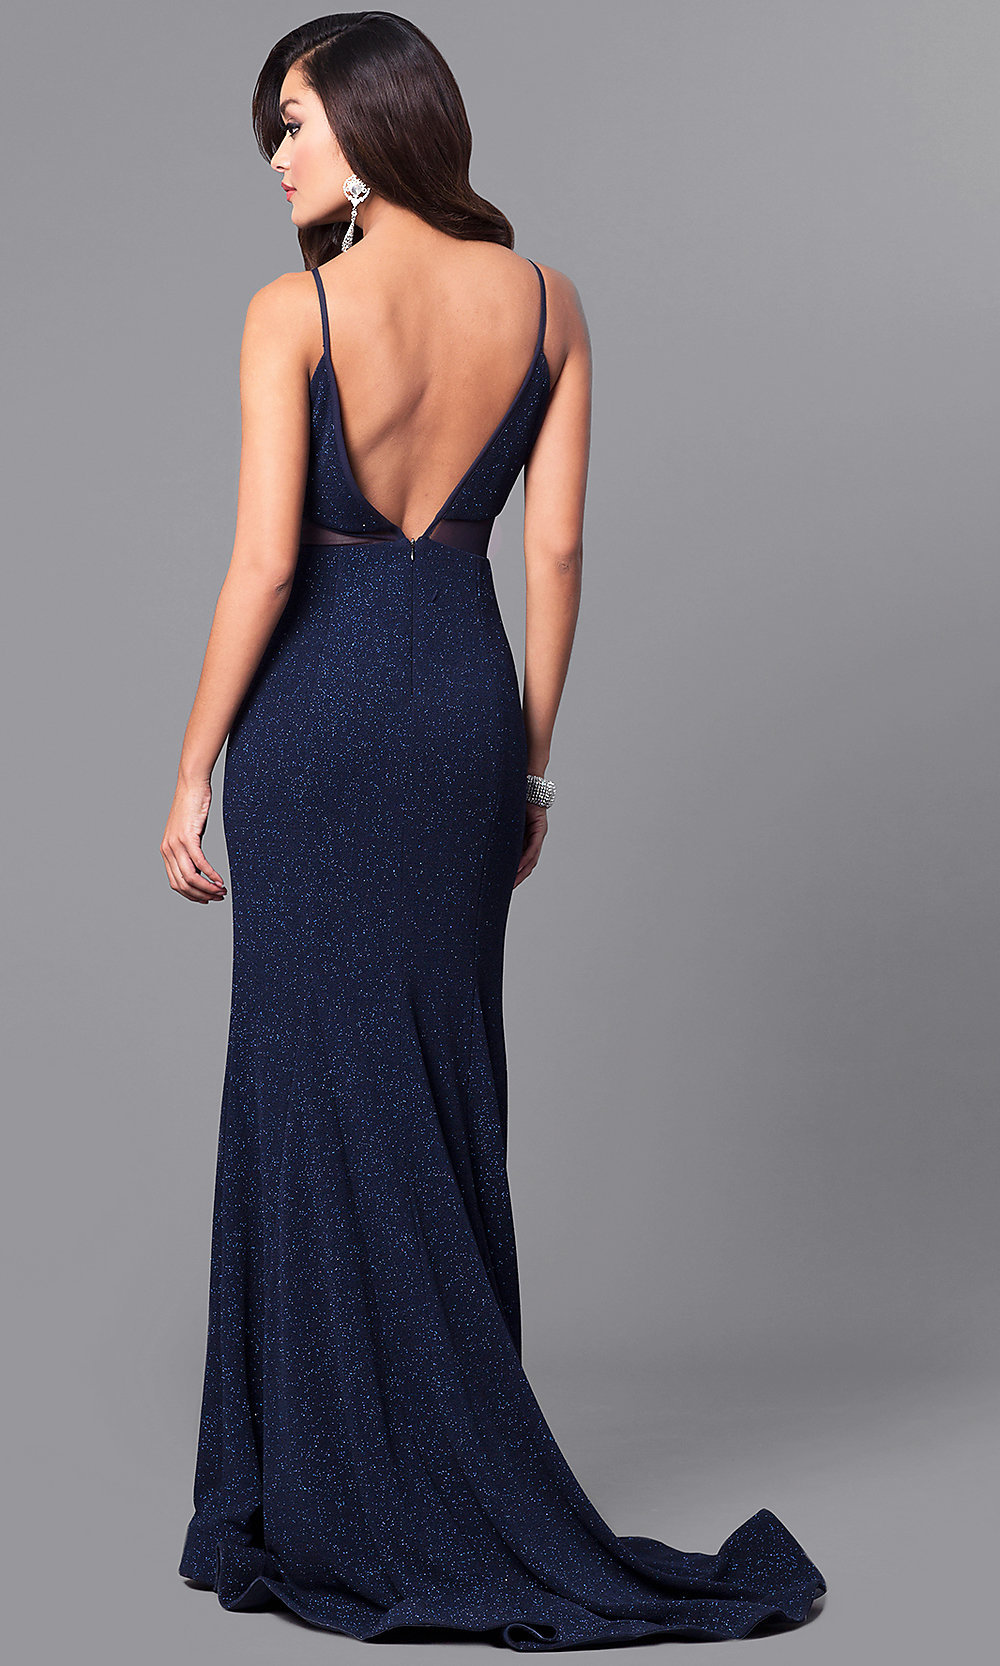 Open-Back Navy Blue Long Glitter Prom Dress-PromGirl